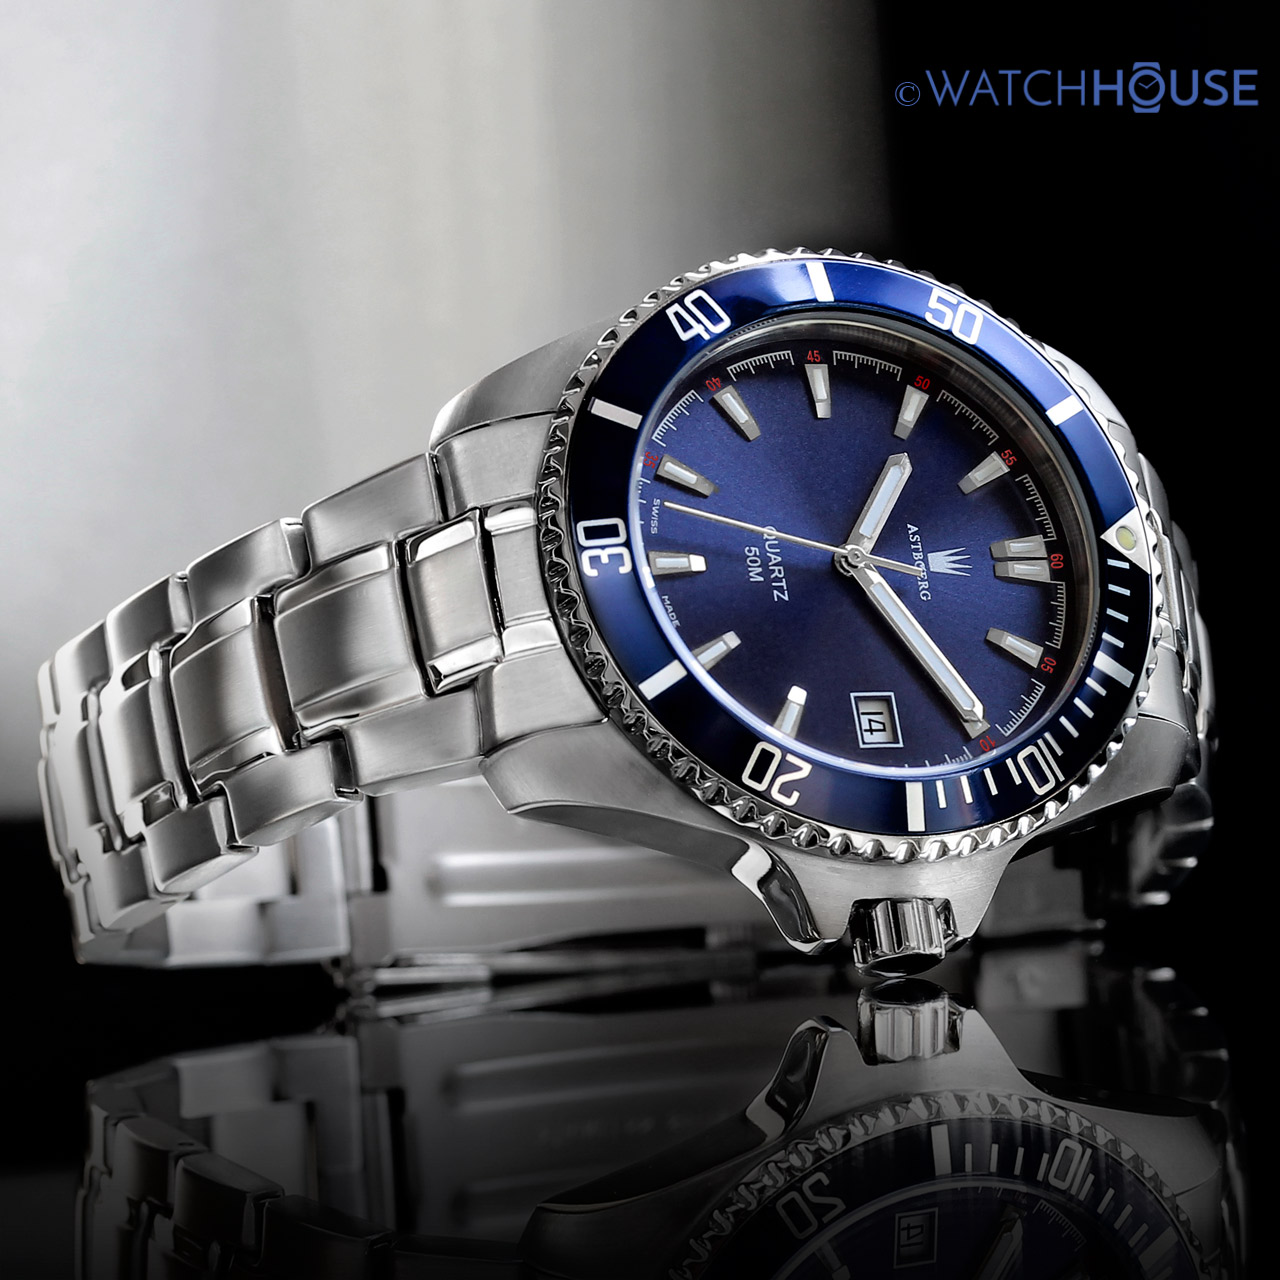 Astboerg Ocean AT2703MB Swiss Made Herren Armbanduhr